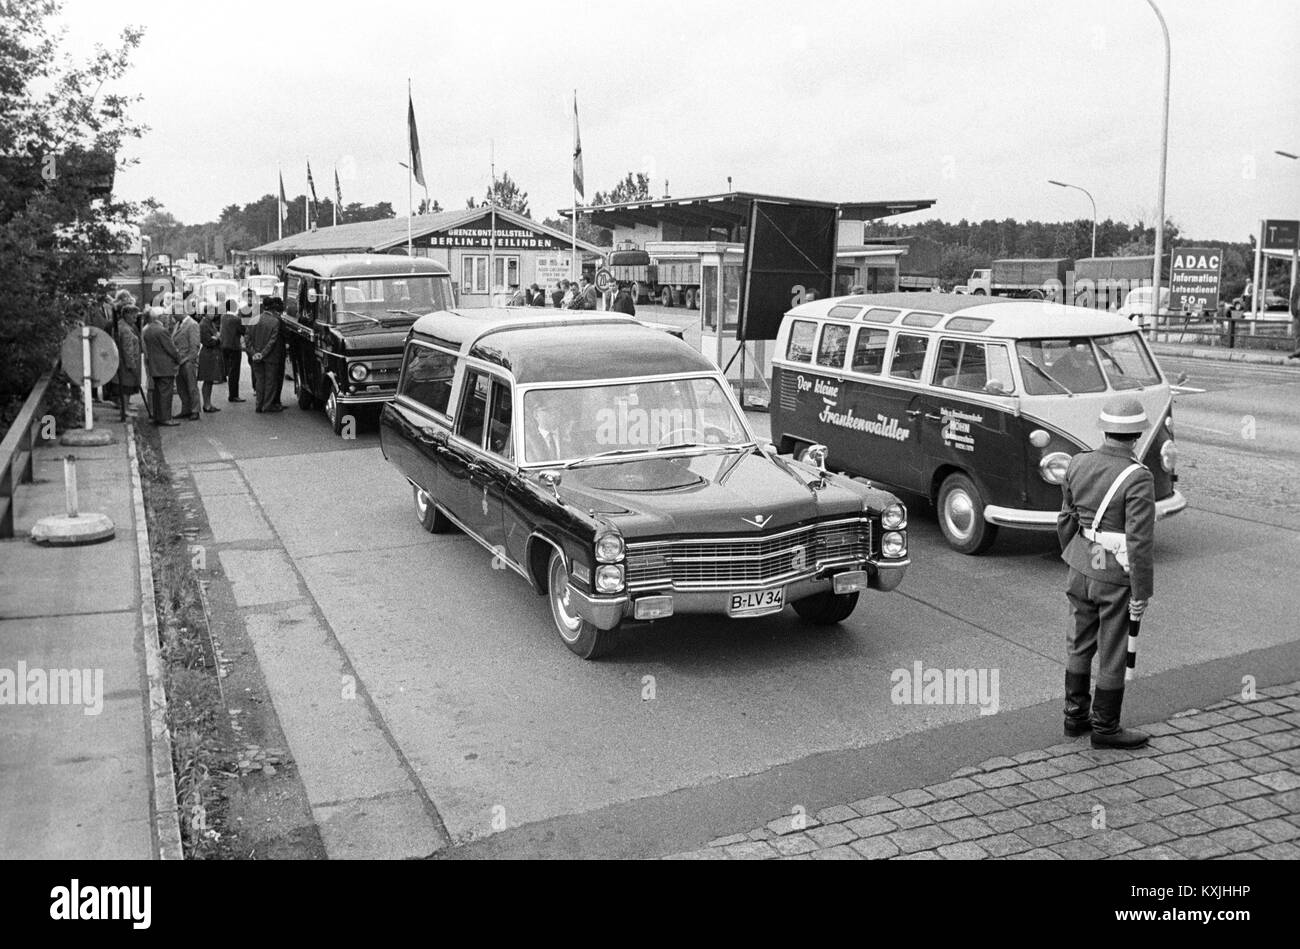 In a convoy of 120 cars the mortal remains of student Benno Ohnesorg, who was shot on 02 June 1967, are taken from - Stock Image